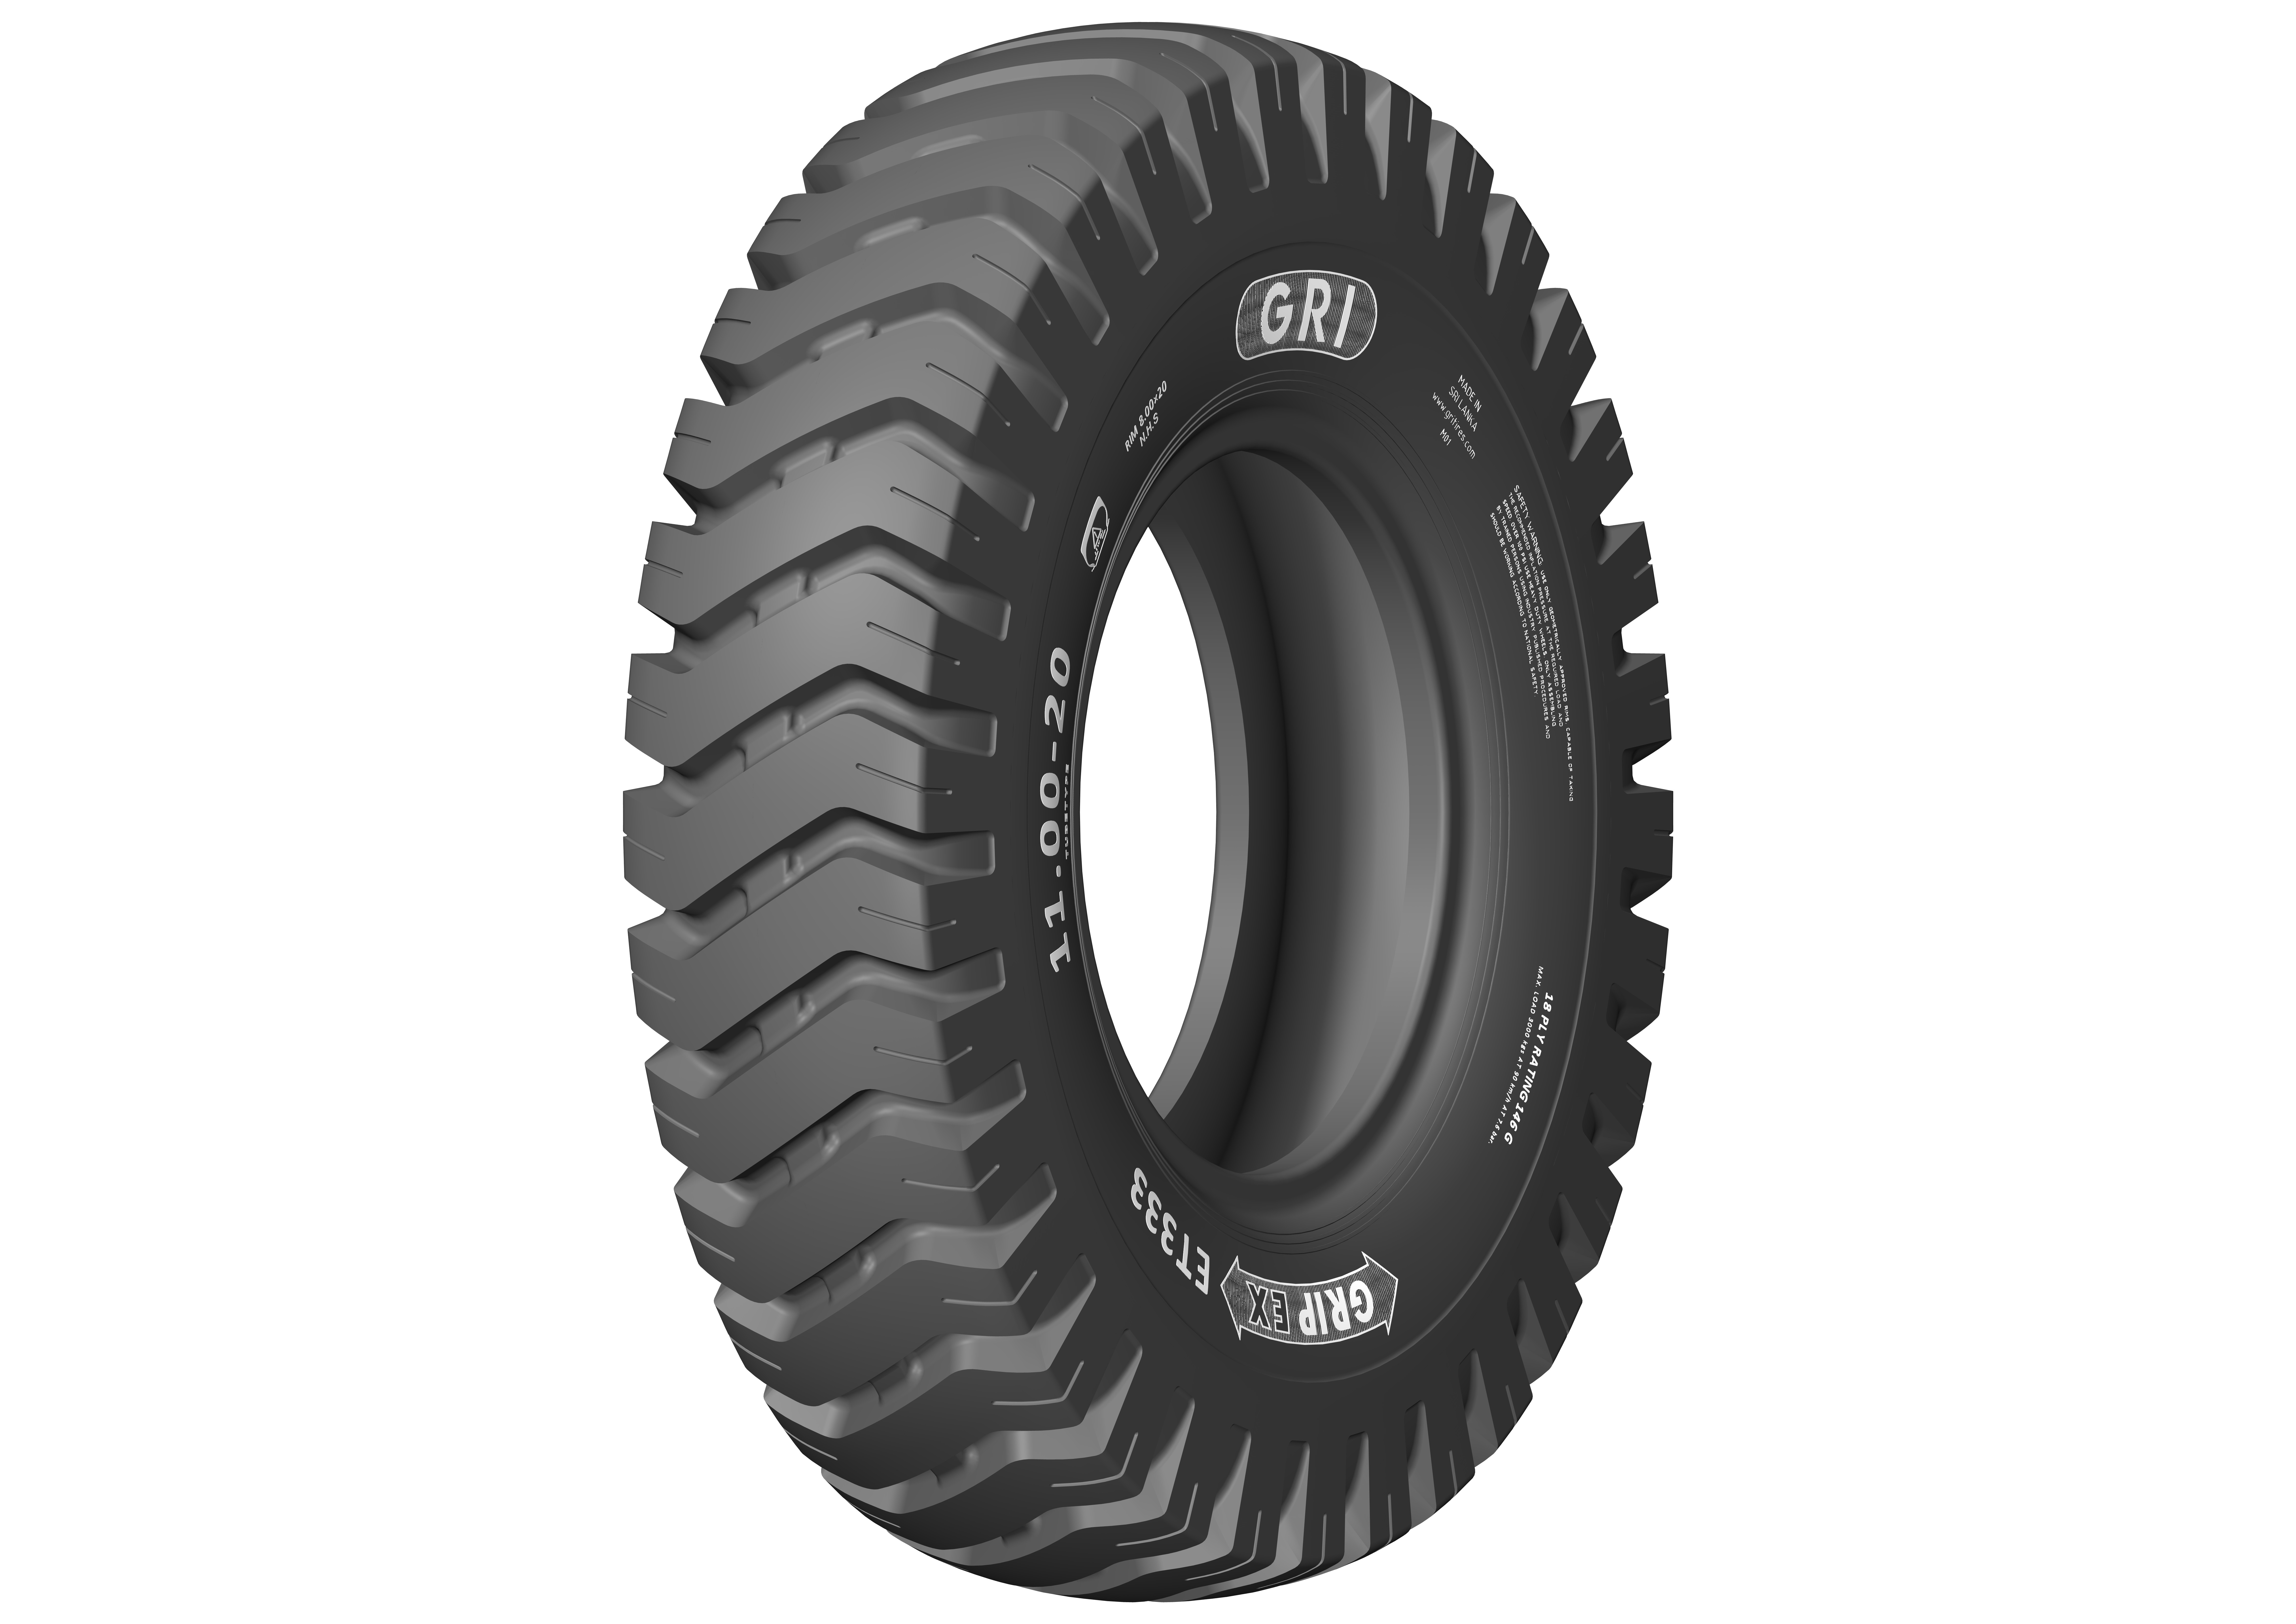 GRI Introduces New Specialty Tires Image